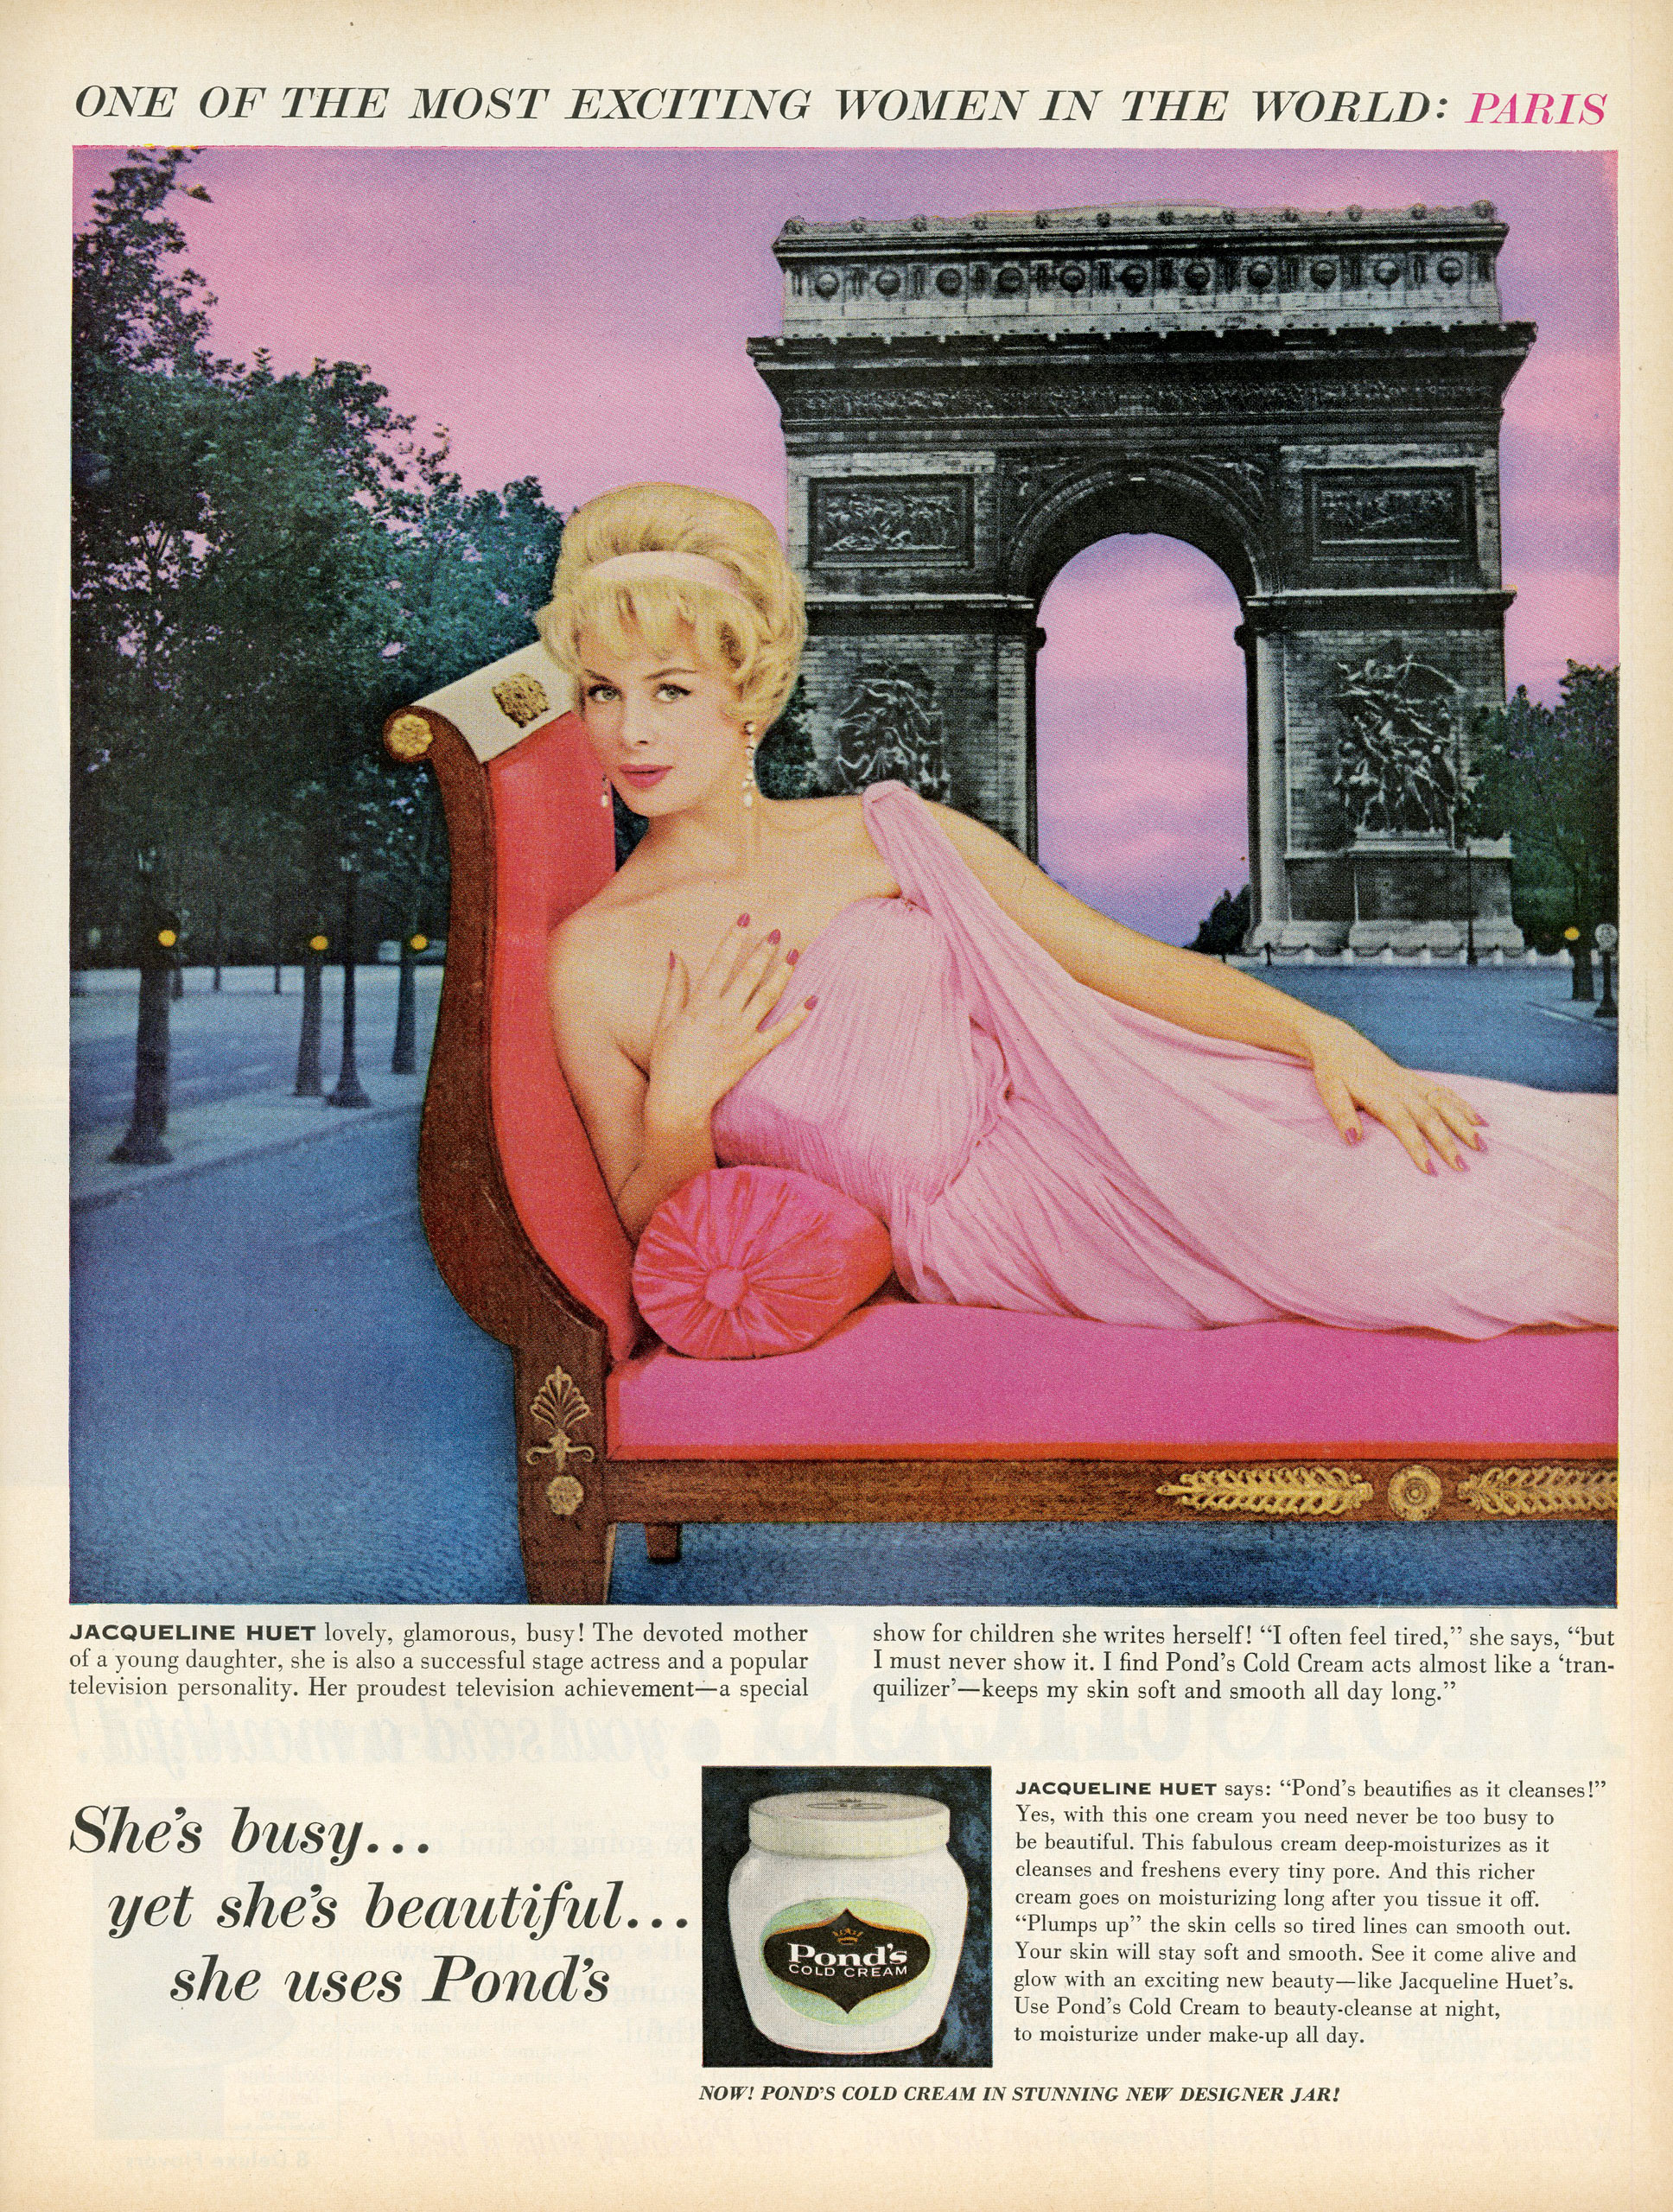 <b>Pond's, August 22, 1965</b> In the show, results from a focus group suggest that the best way to target potential Pond's buyers is to play on young women's dreams of getting married. This Pond's ad from 1965 targets a slightly older demographic, as the model, French actress Jacqueline Huet, was a married mother. The visual choices contribute to a sense of elegance and maturity, not least of all the use of a Parisian backdrop, European architecture and a sophisticated gown. The ad is imbued with a slightly modern sensibility, appealing to busy working mothers.